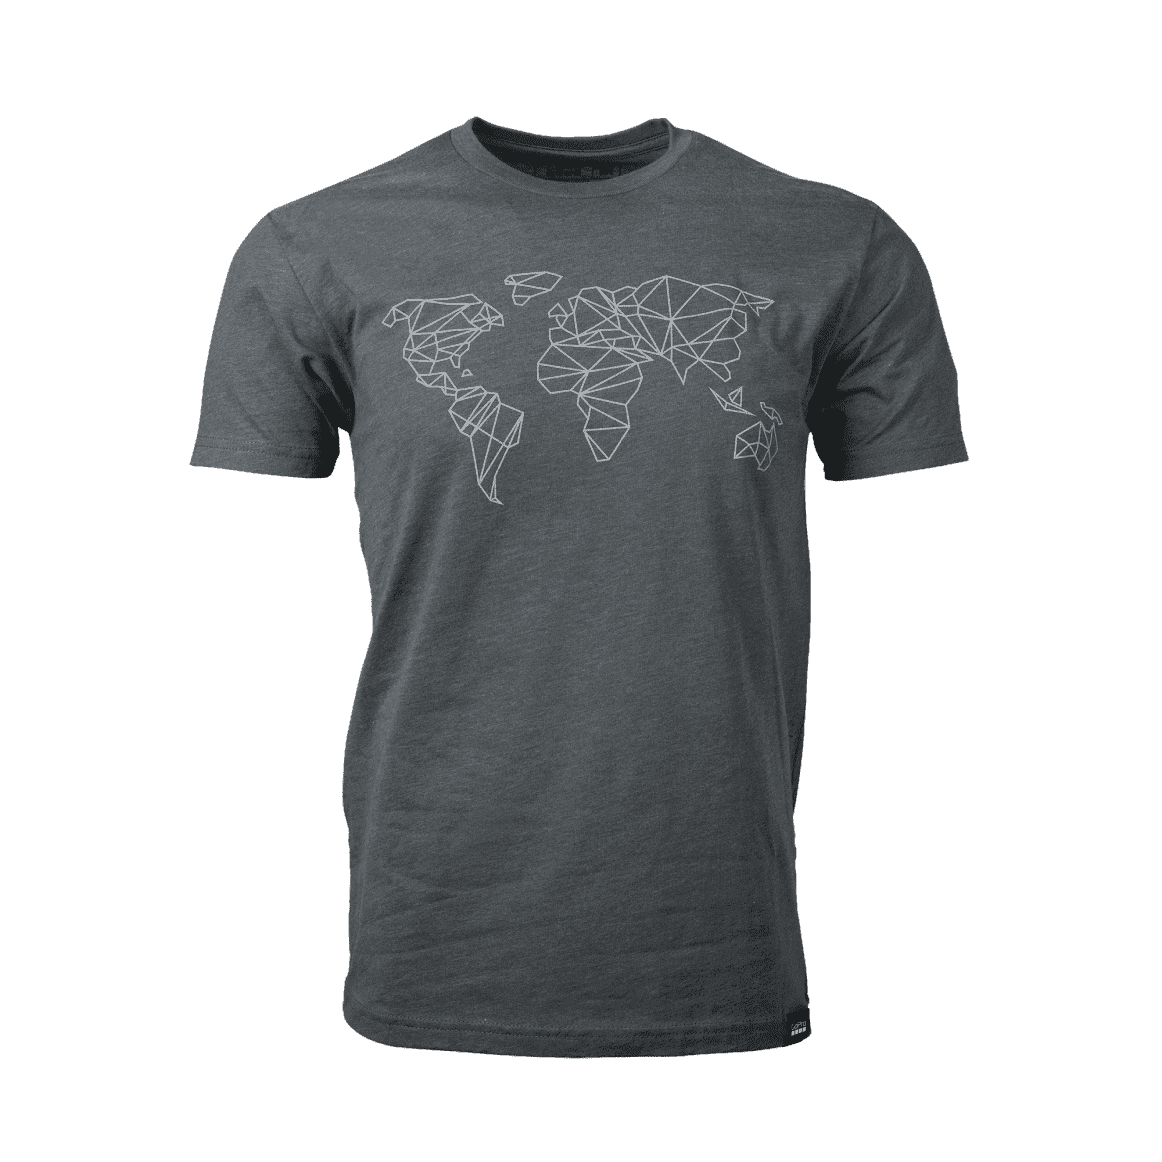 Global-graphic-tee-front-image